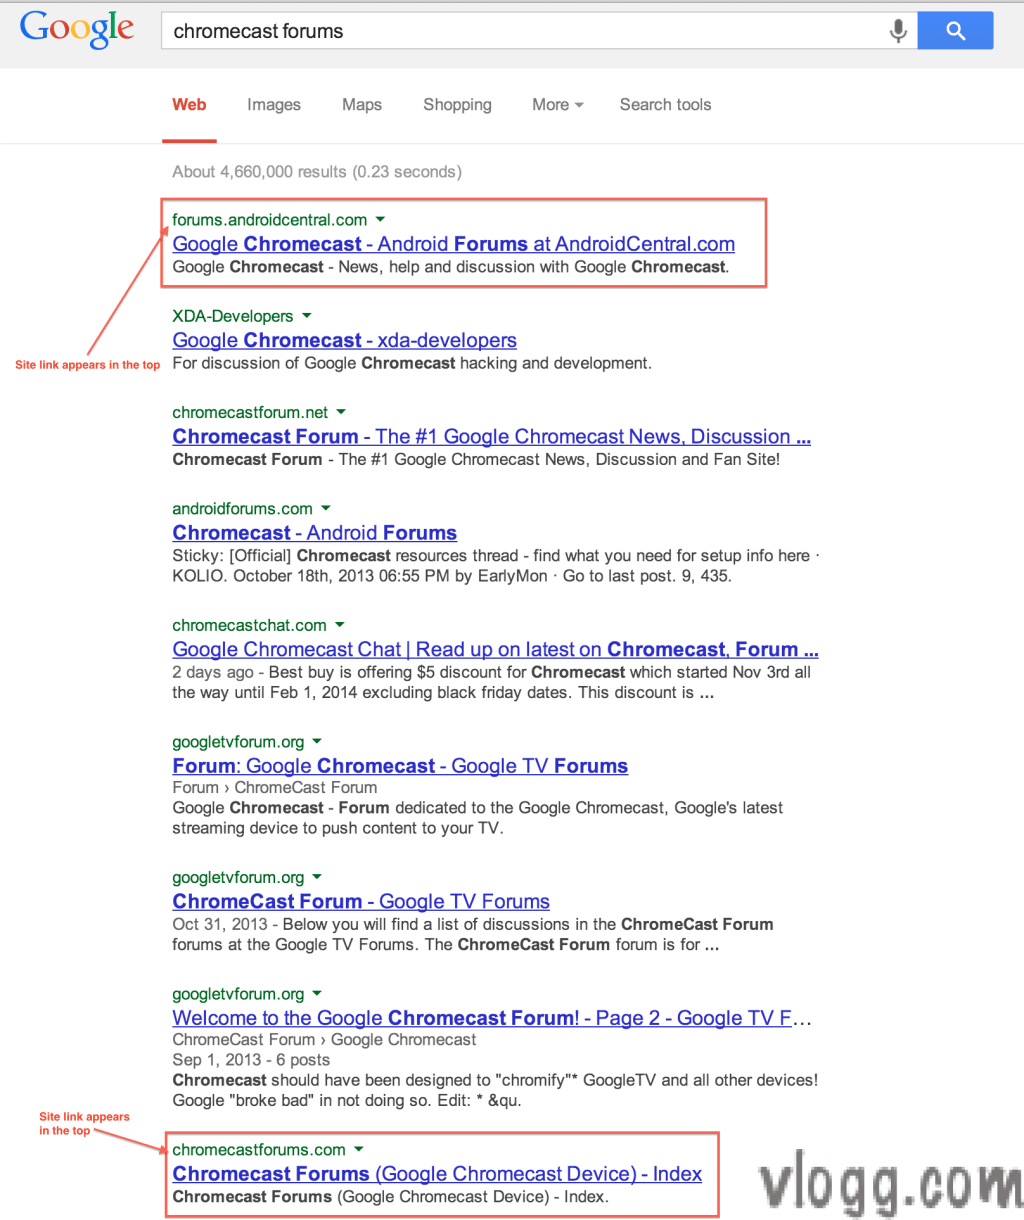 Spotted: Google Trying Search Results With Sitelinks in Top?